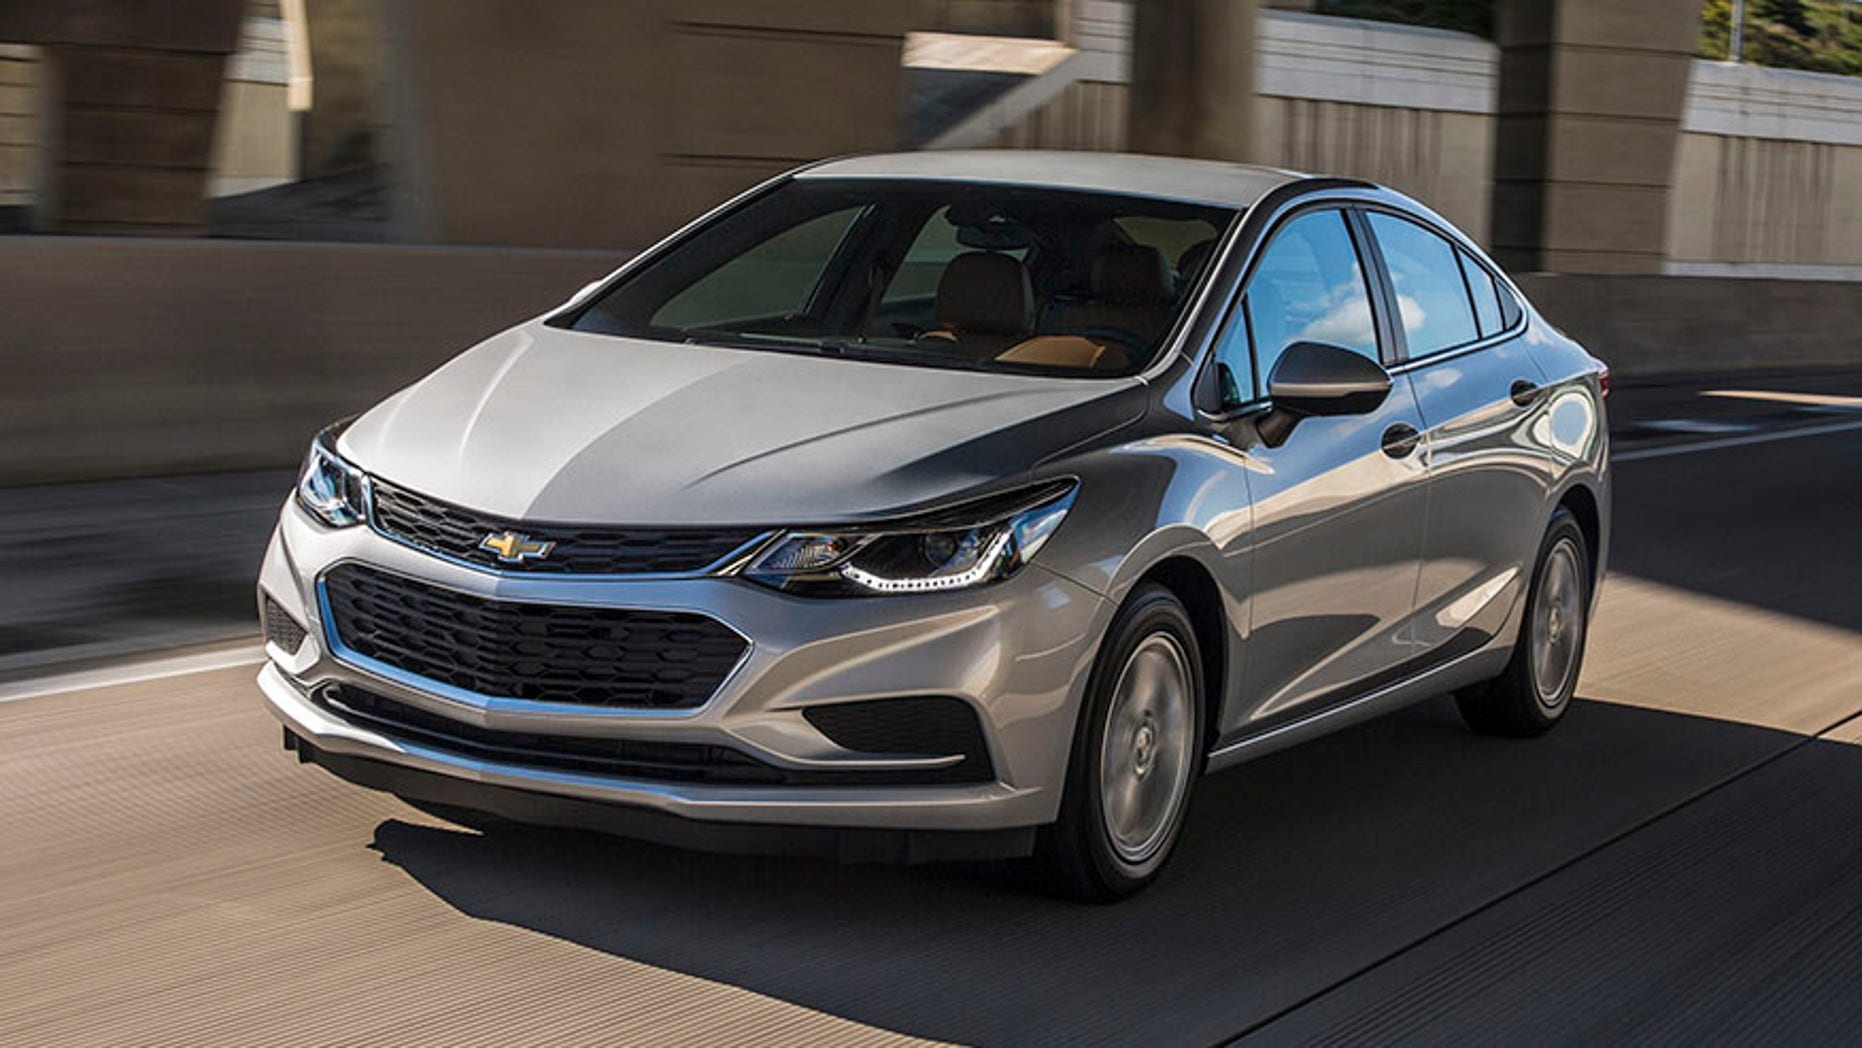 Chevrolet Cruze Owners Manual: Fuels in Foreign Countries